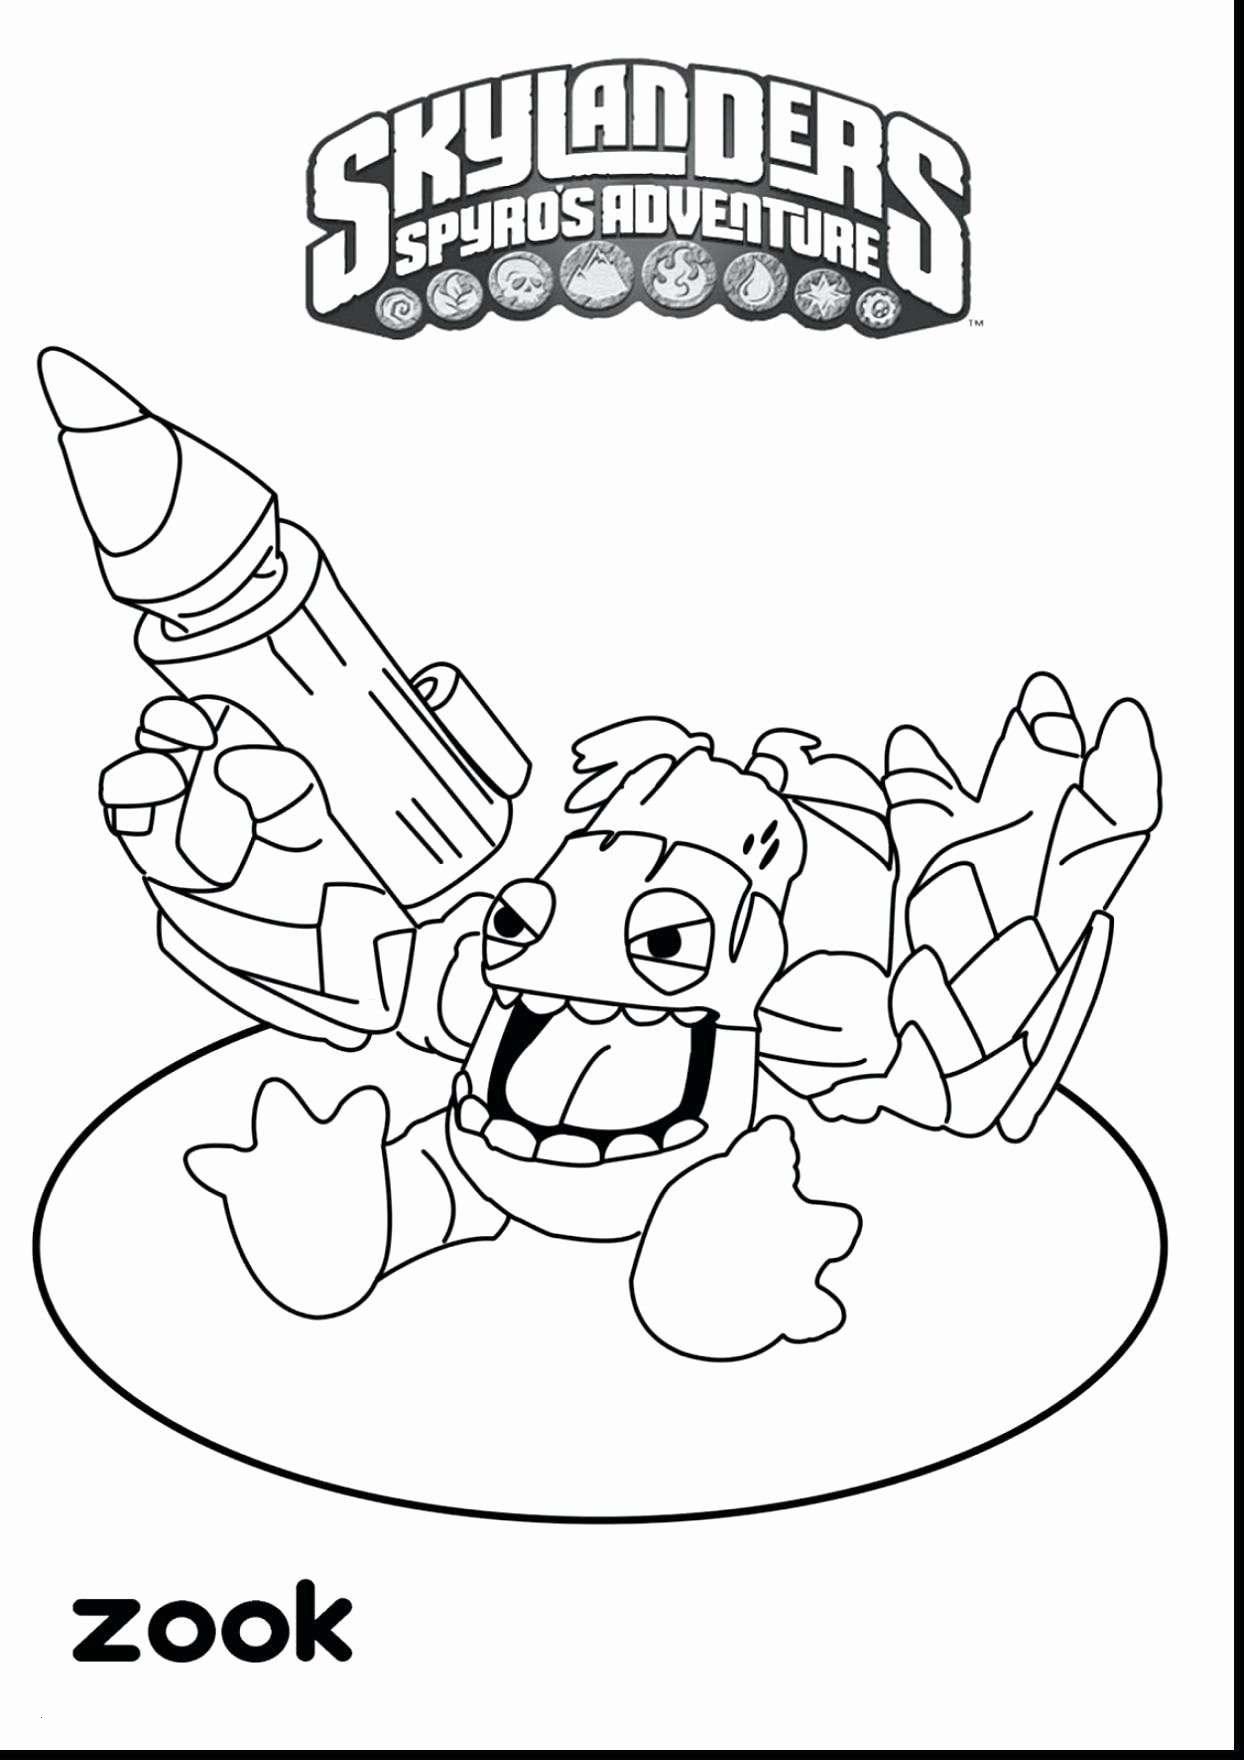 Webkinz Coloring Pages  Collection 4q - Save it to your computer